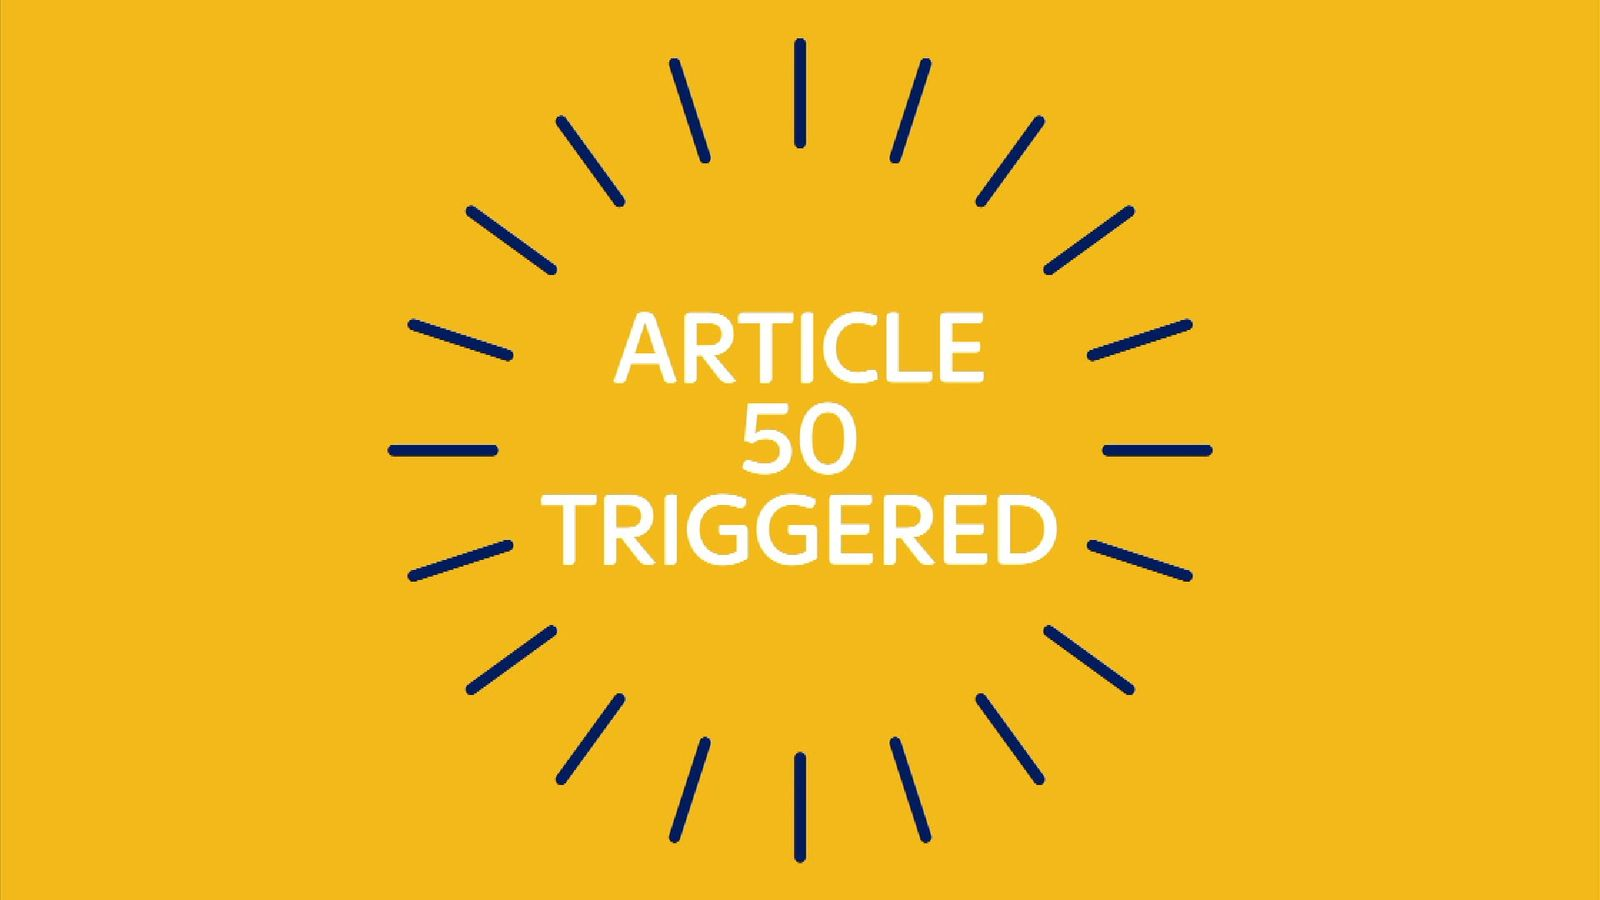 Article 50 has been triggered